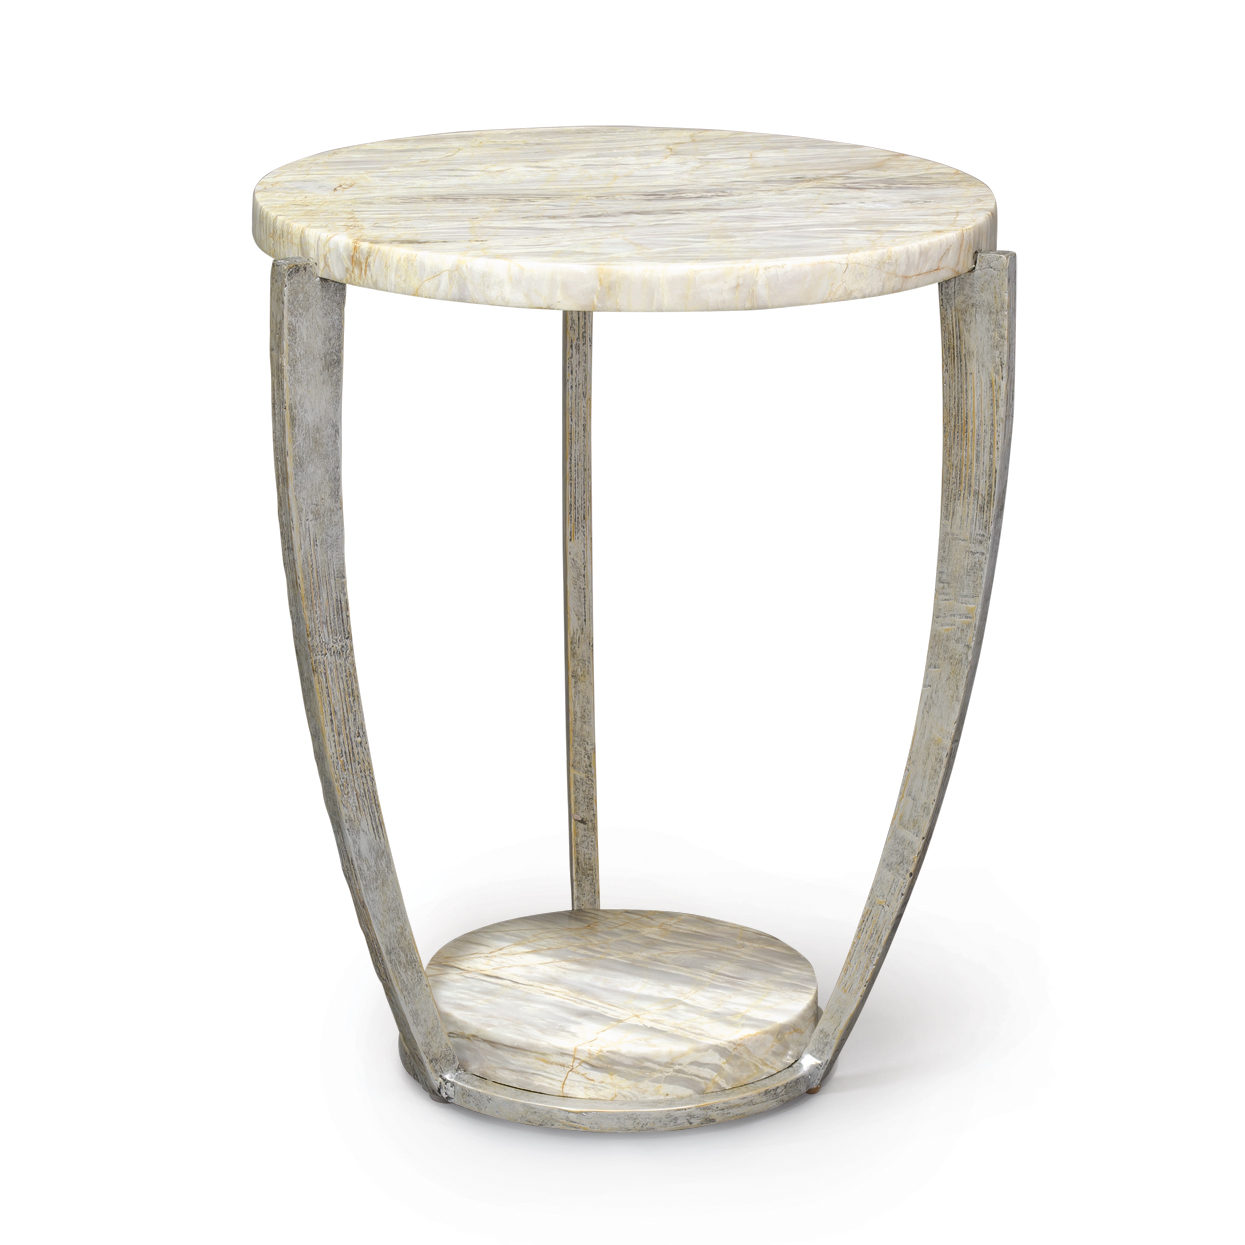 exciting marble accent table set bistro threshold top wood round small antique and faux killian target metal black white nero full size outdoor wicker chairs high umbrella lights